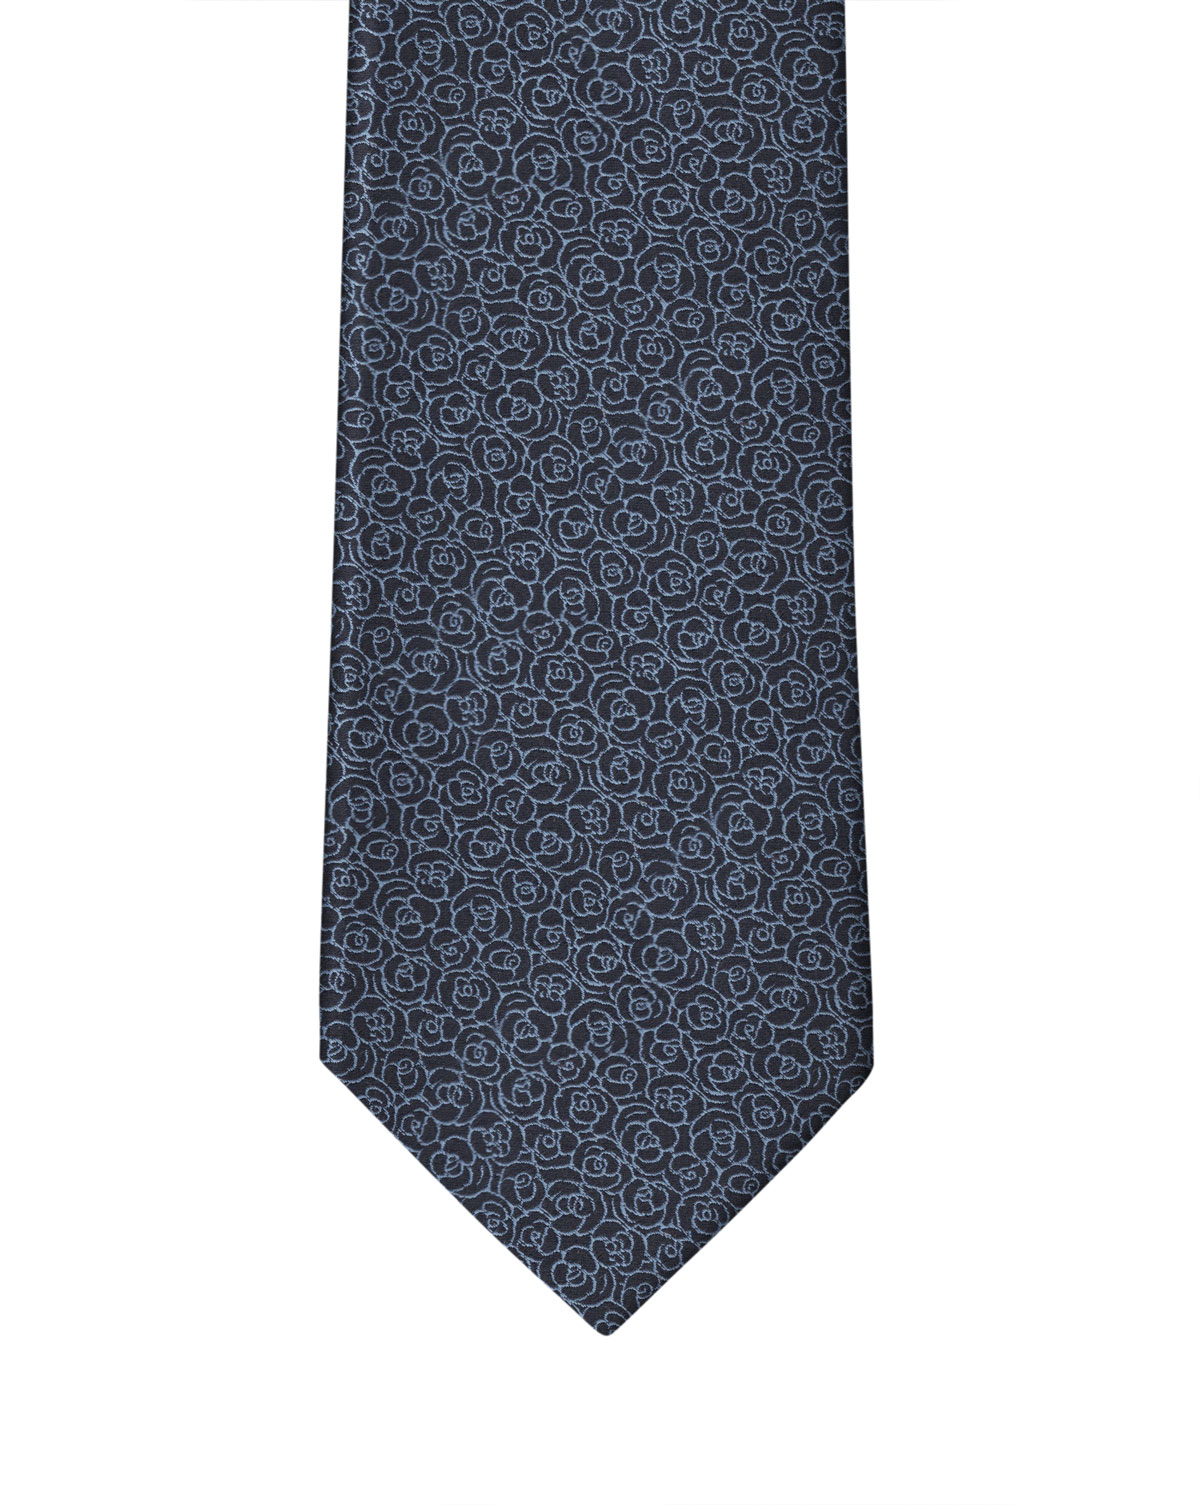 Navy Blue Small Flower Necktie